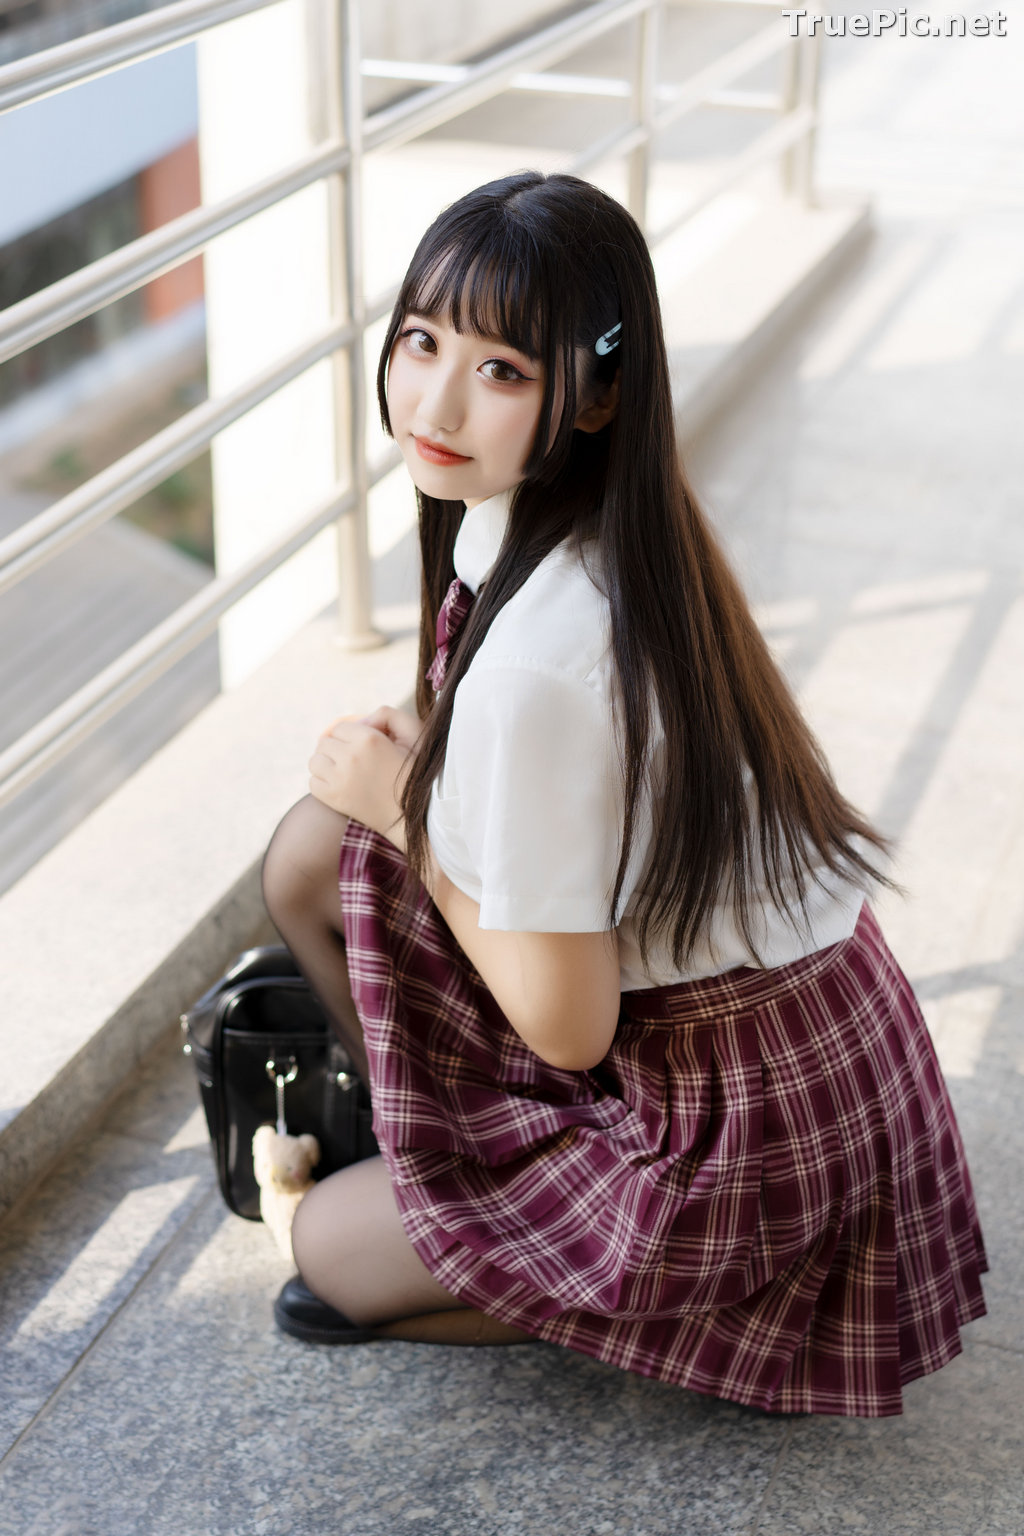 Image [MTCos] 喵糖映画 Vol.023 – Chinese Cute Model – Long Hair JK Girl - TruePic.net - Picture-10